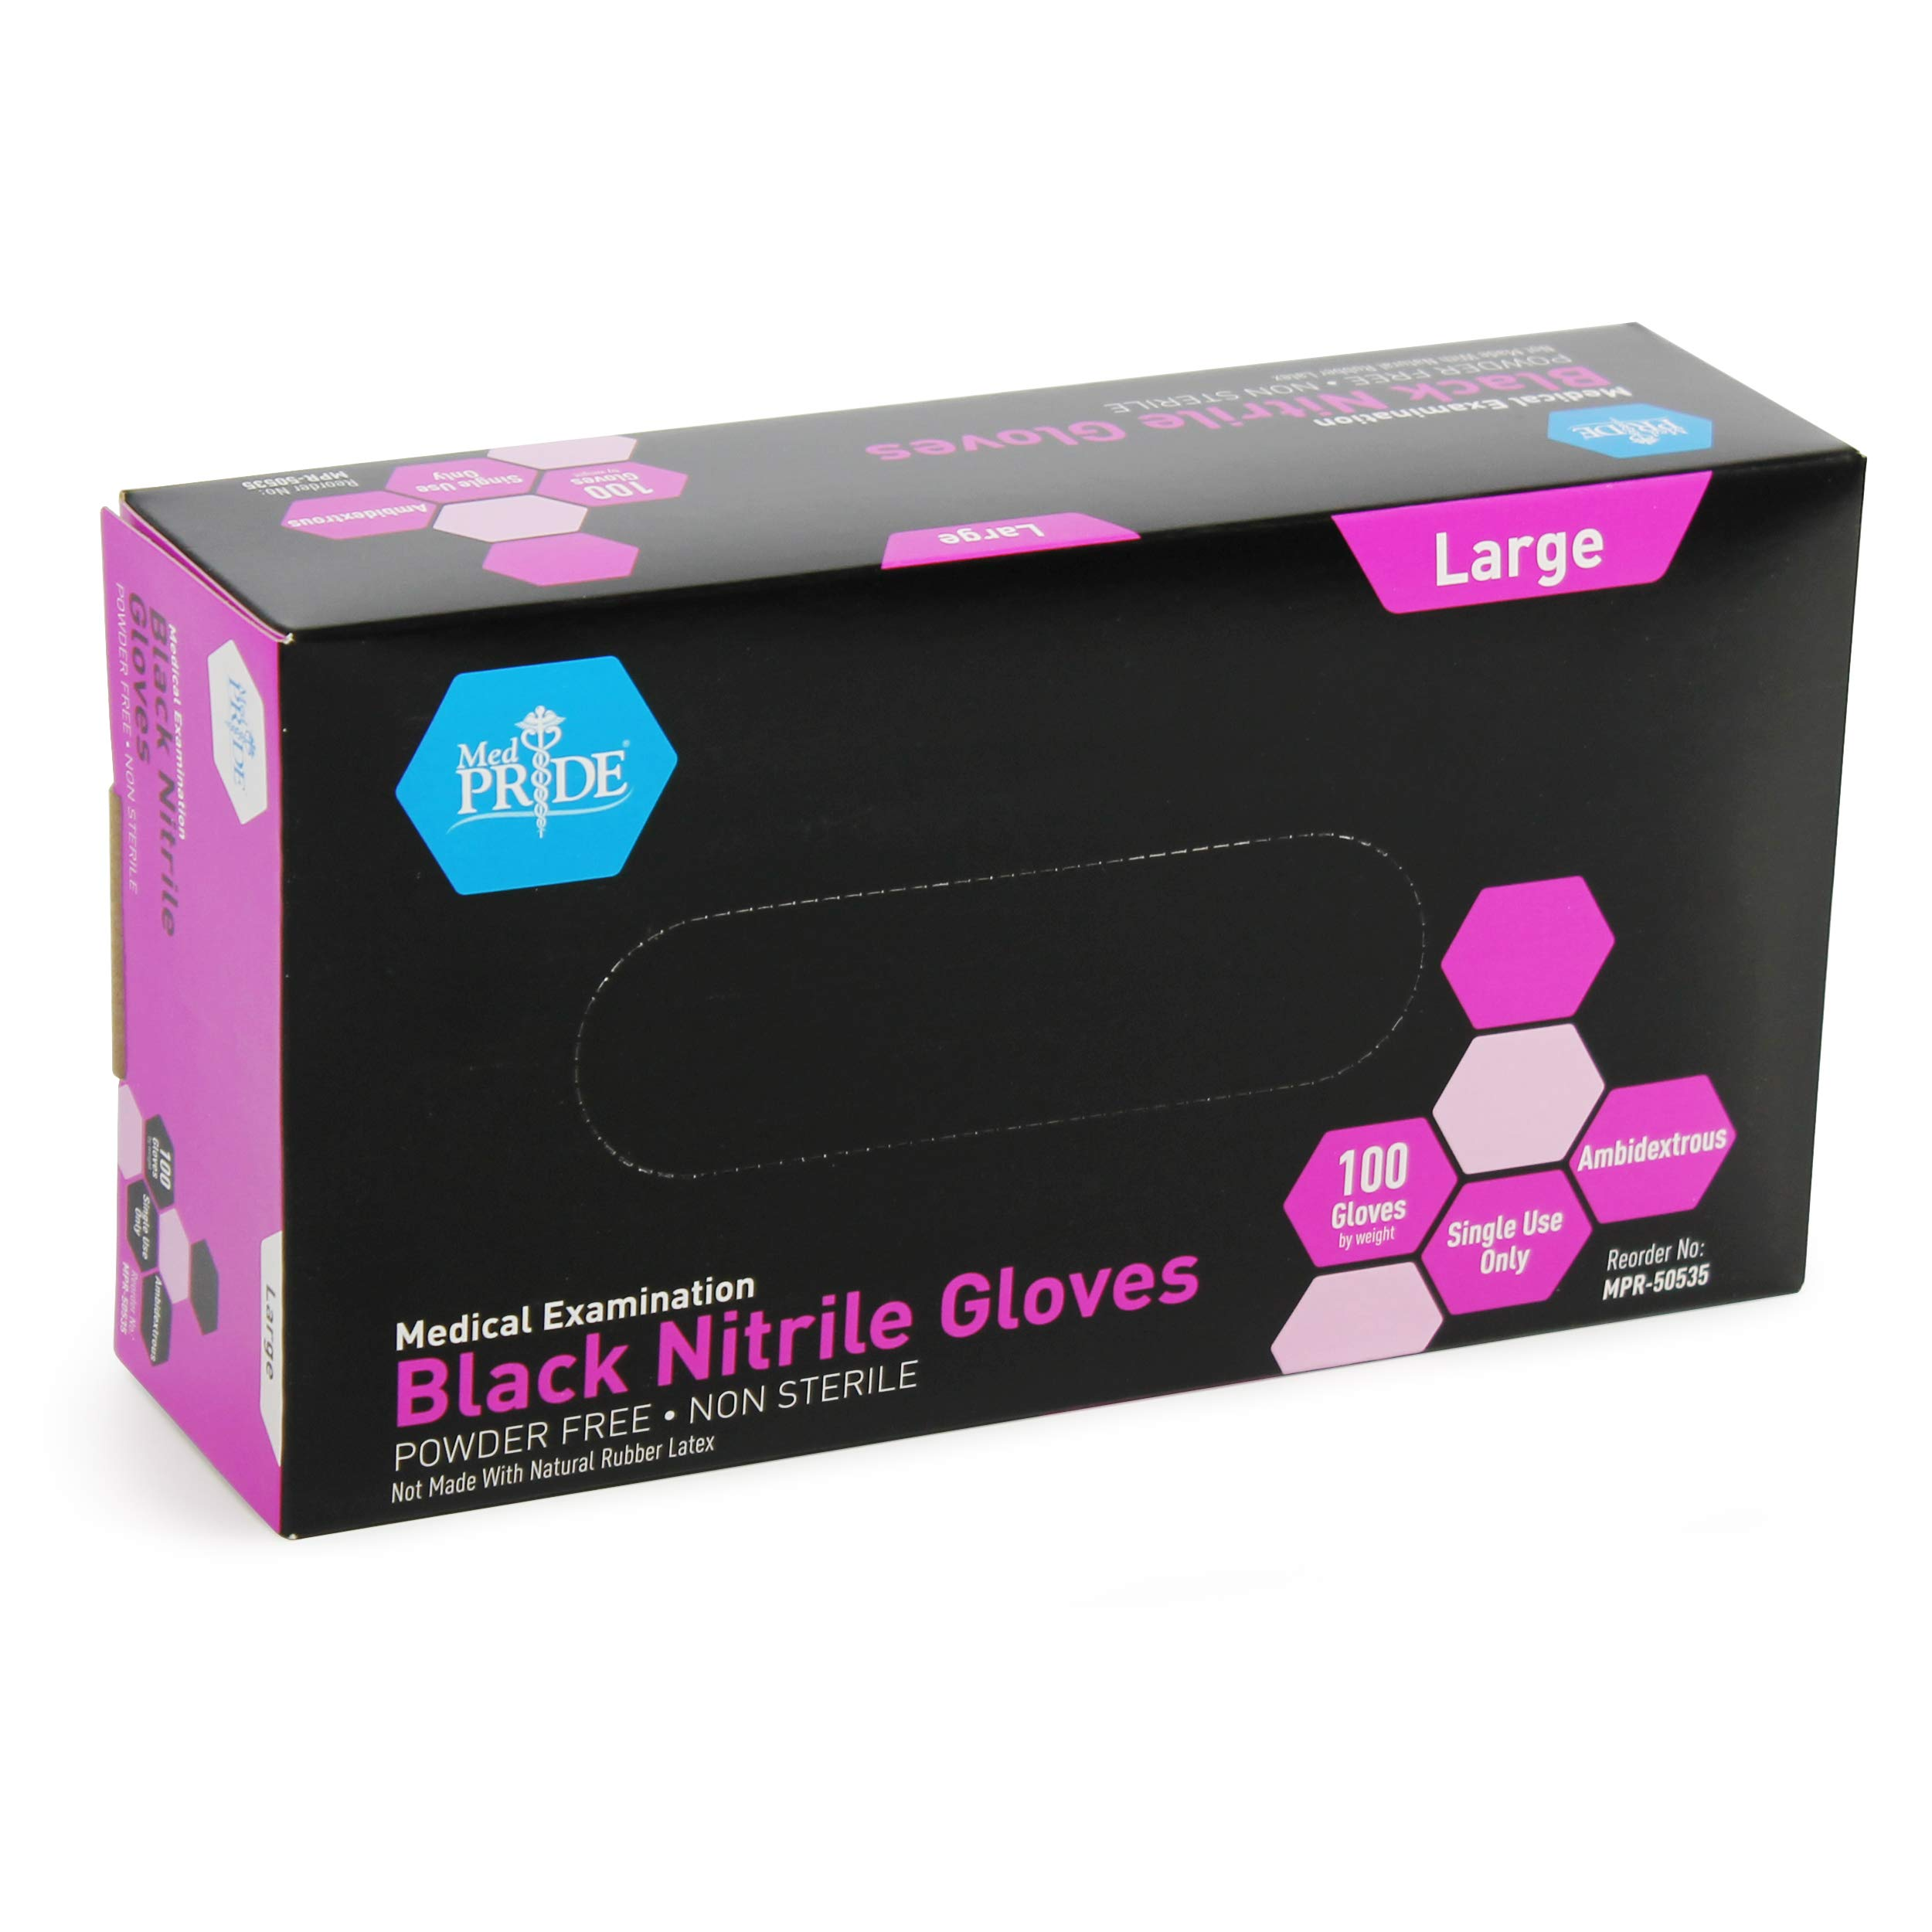 Medpride Medical Examination Nitrile Gloves| Large Case of 1000| Black, Latex/Powder-Free, Non-Sterile Gloves| Professional Grade for Hospitals, Law Enforcement, Food Vendors, Tattoo Artists, Home Use by MED PRIDE (Image #4)